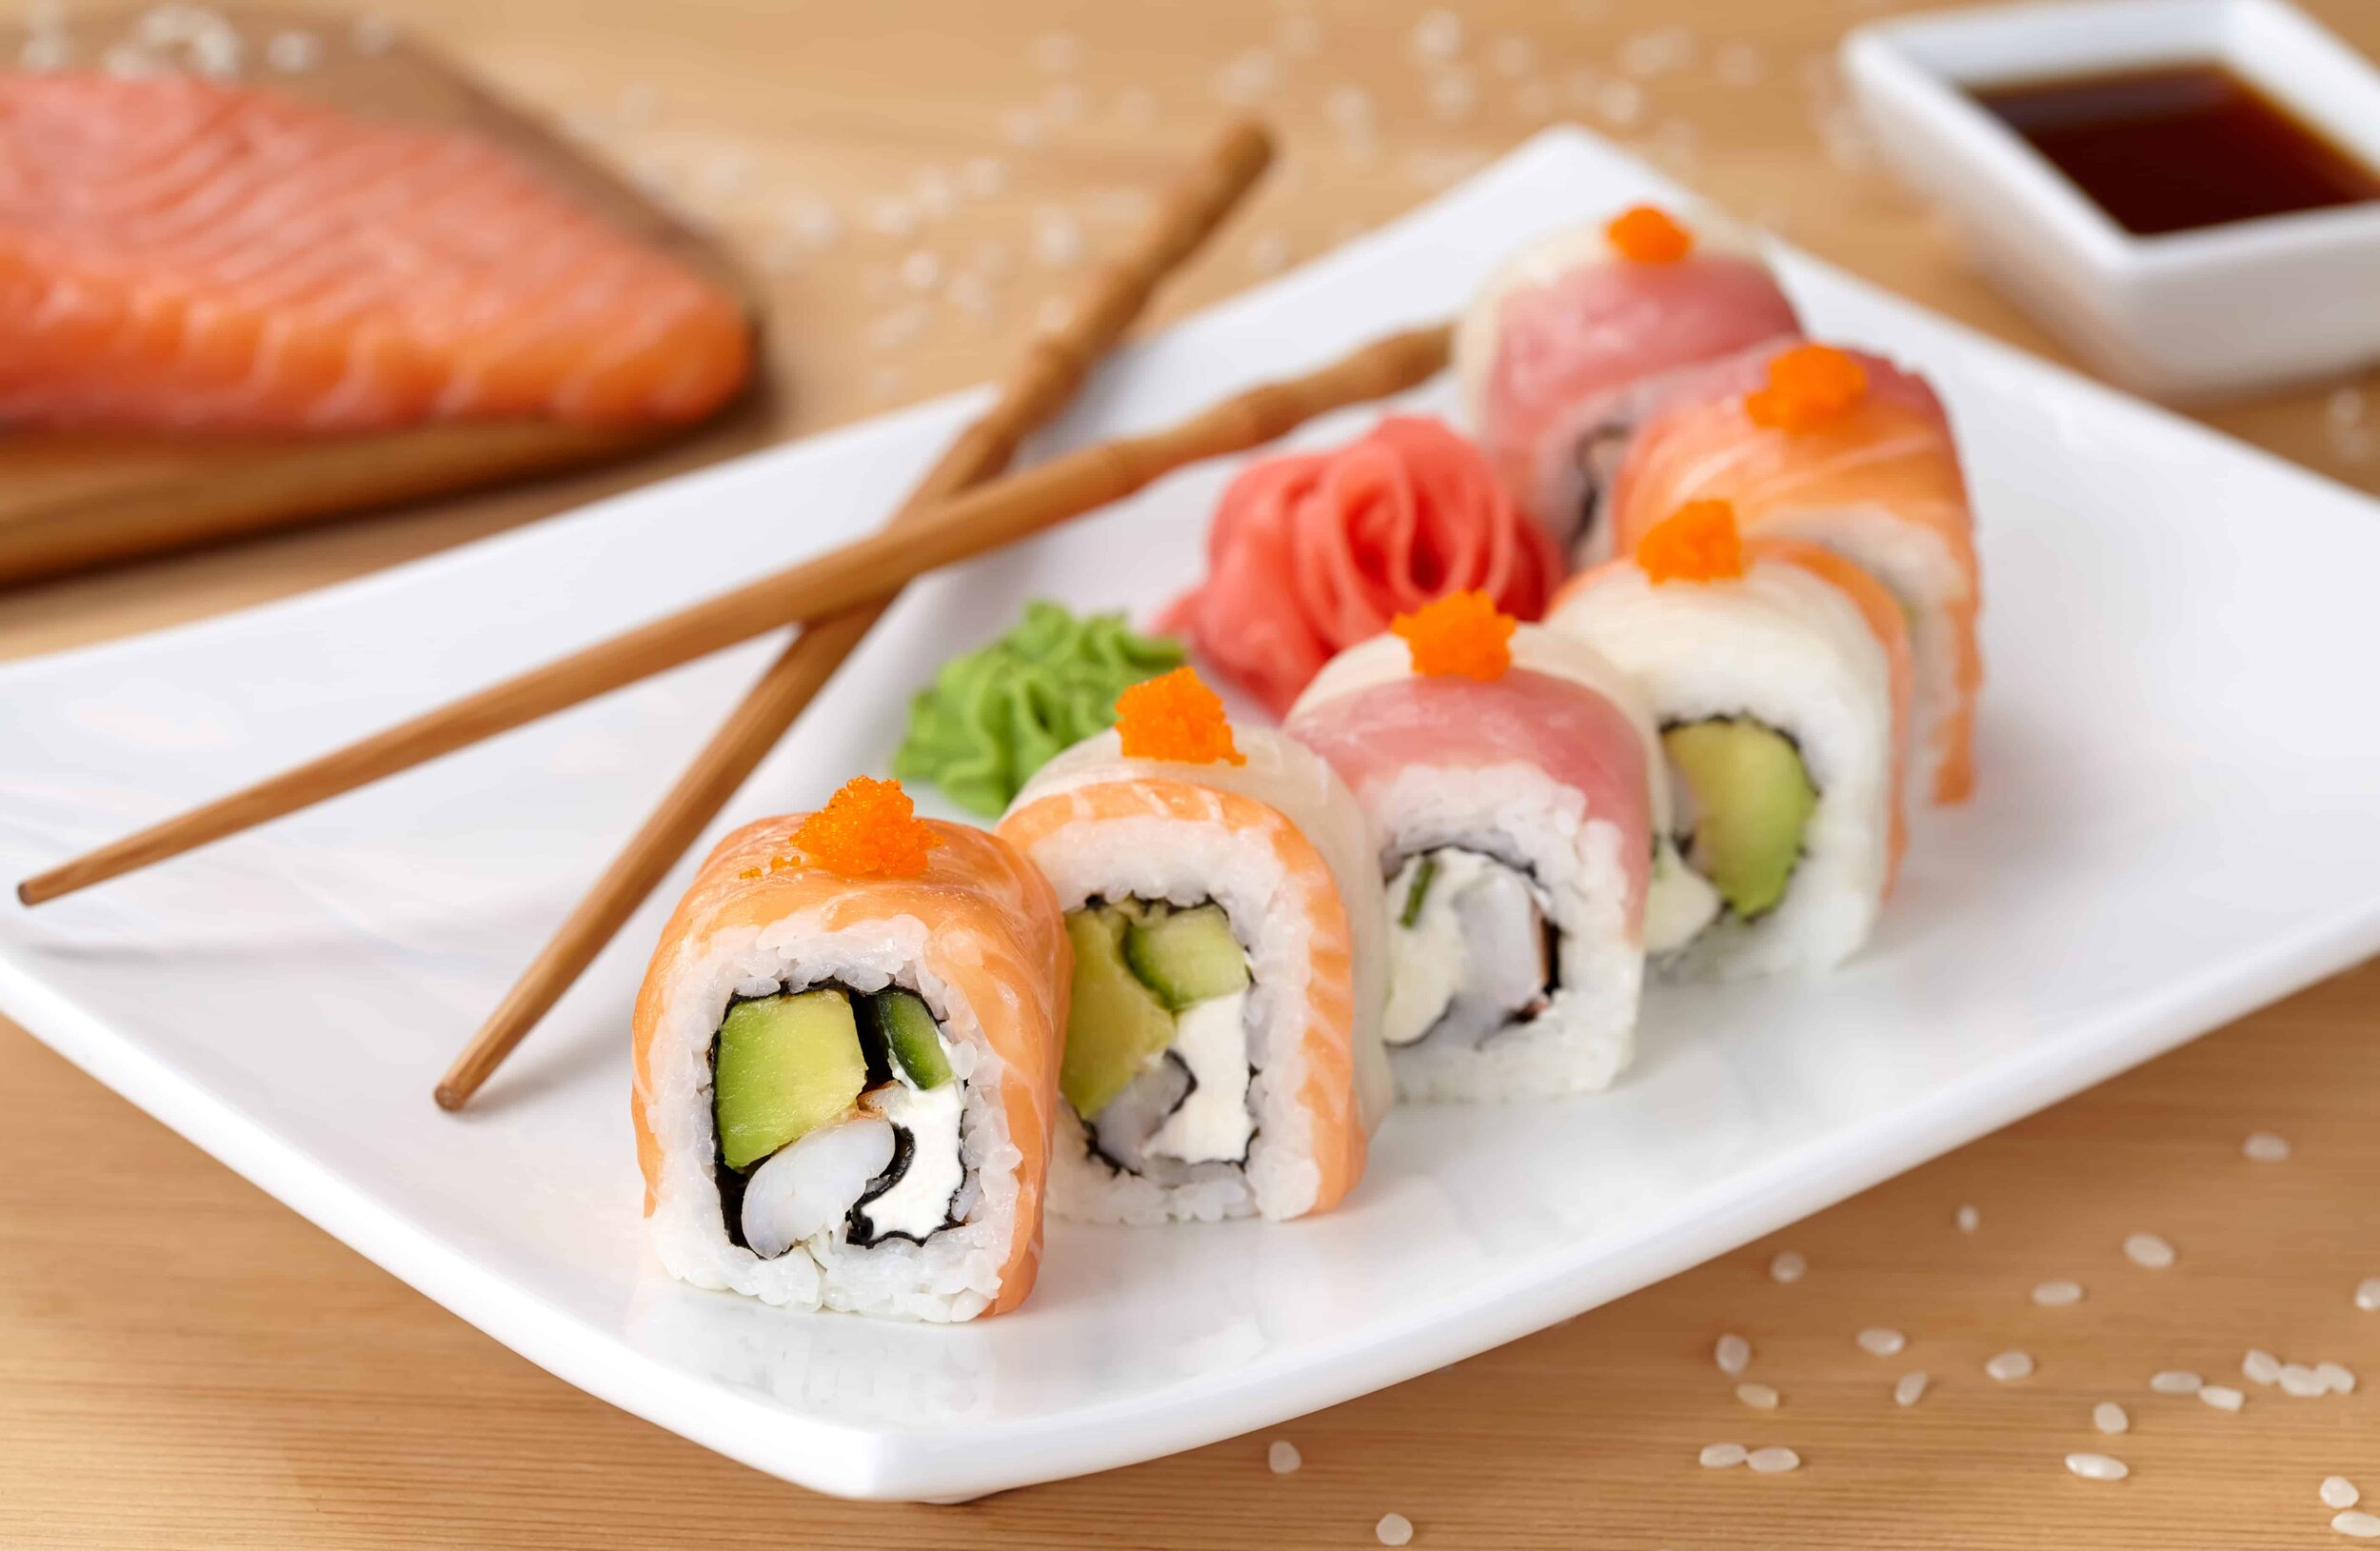 Are Sushi Rolls Good For Weight Loss (11 Sushi Rolls For Weight Loss)